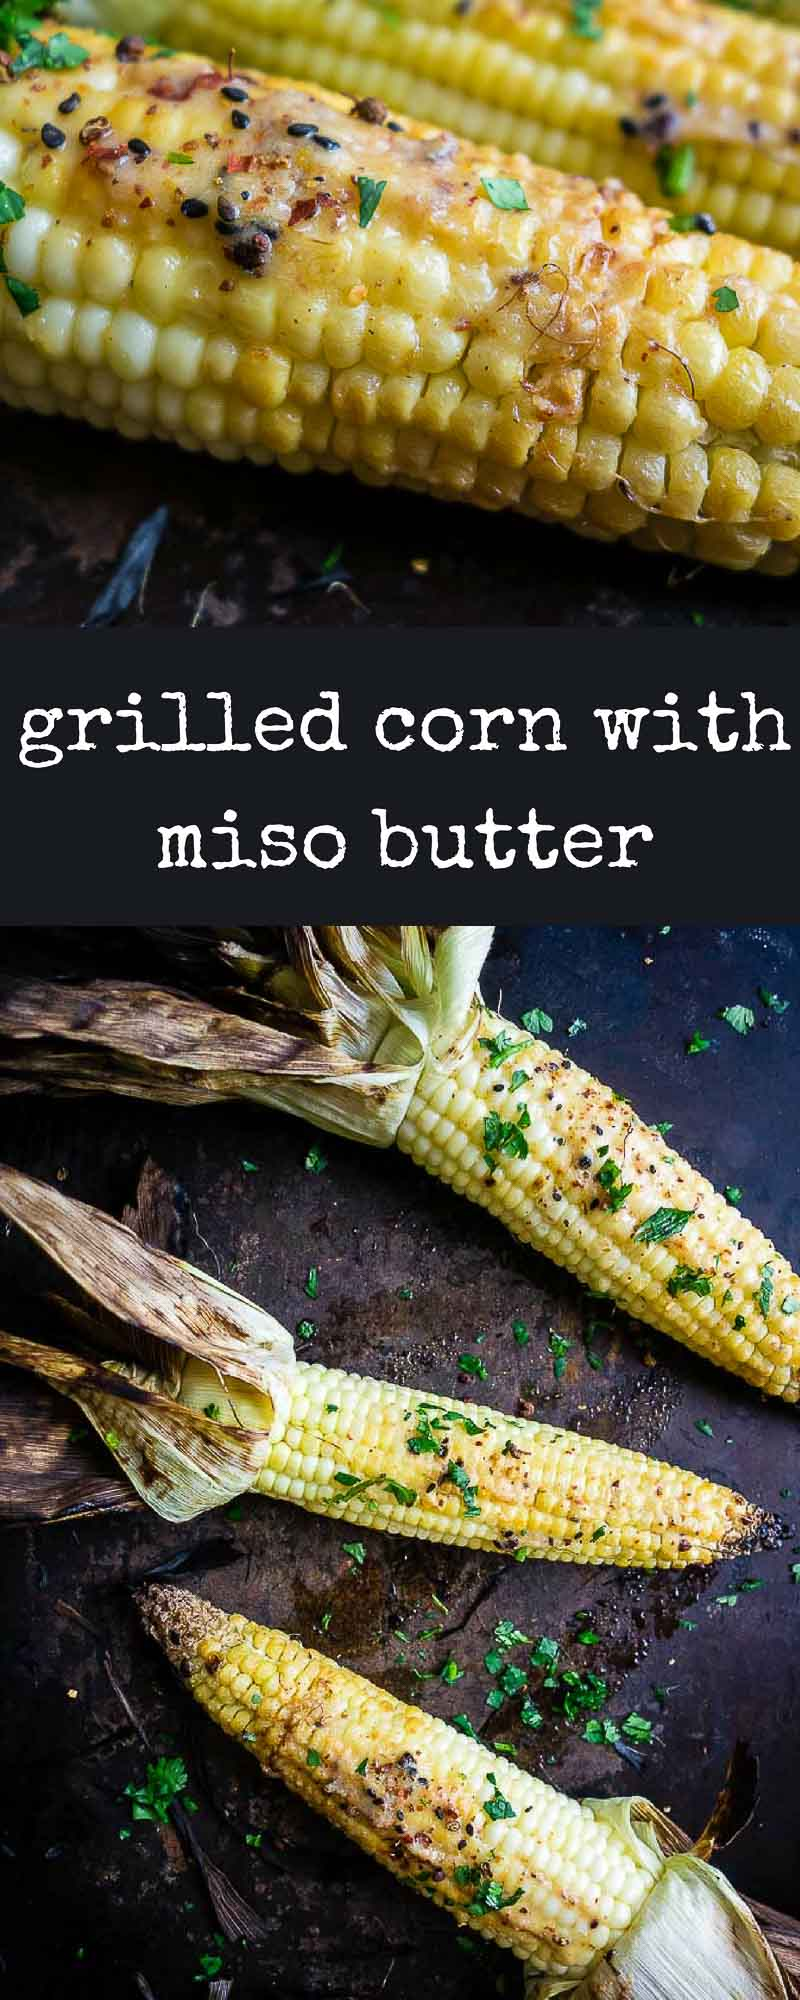 This simple roasted corn is slathered in a homemade miso butter with zesty Japanese togarashi seasoning for the perfect umami kissed flavor.how to grill corn on the cob | miso butter corn | togarashi seasoning | grilled miso corn | grilled corn with togarashi butter | spicy grilled corn | easy grilled corn | corn grilled in husks | miso grilled corn | grilled corn with miso butter | best grilled corn | 10 minute grilled corn